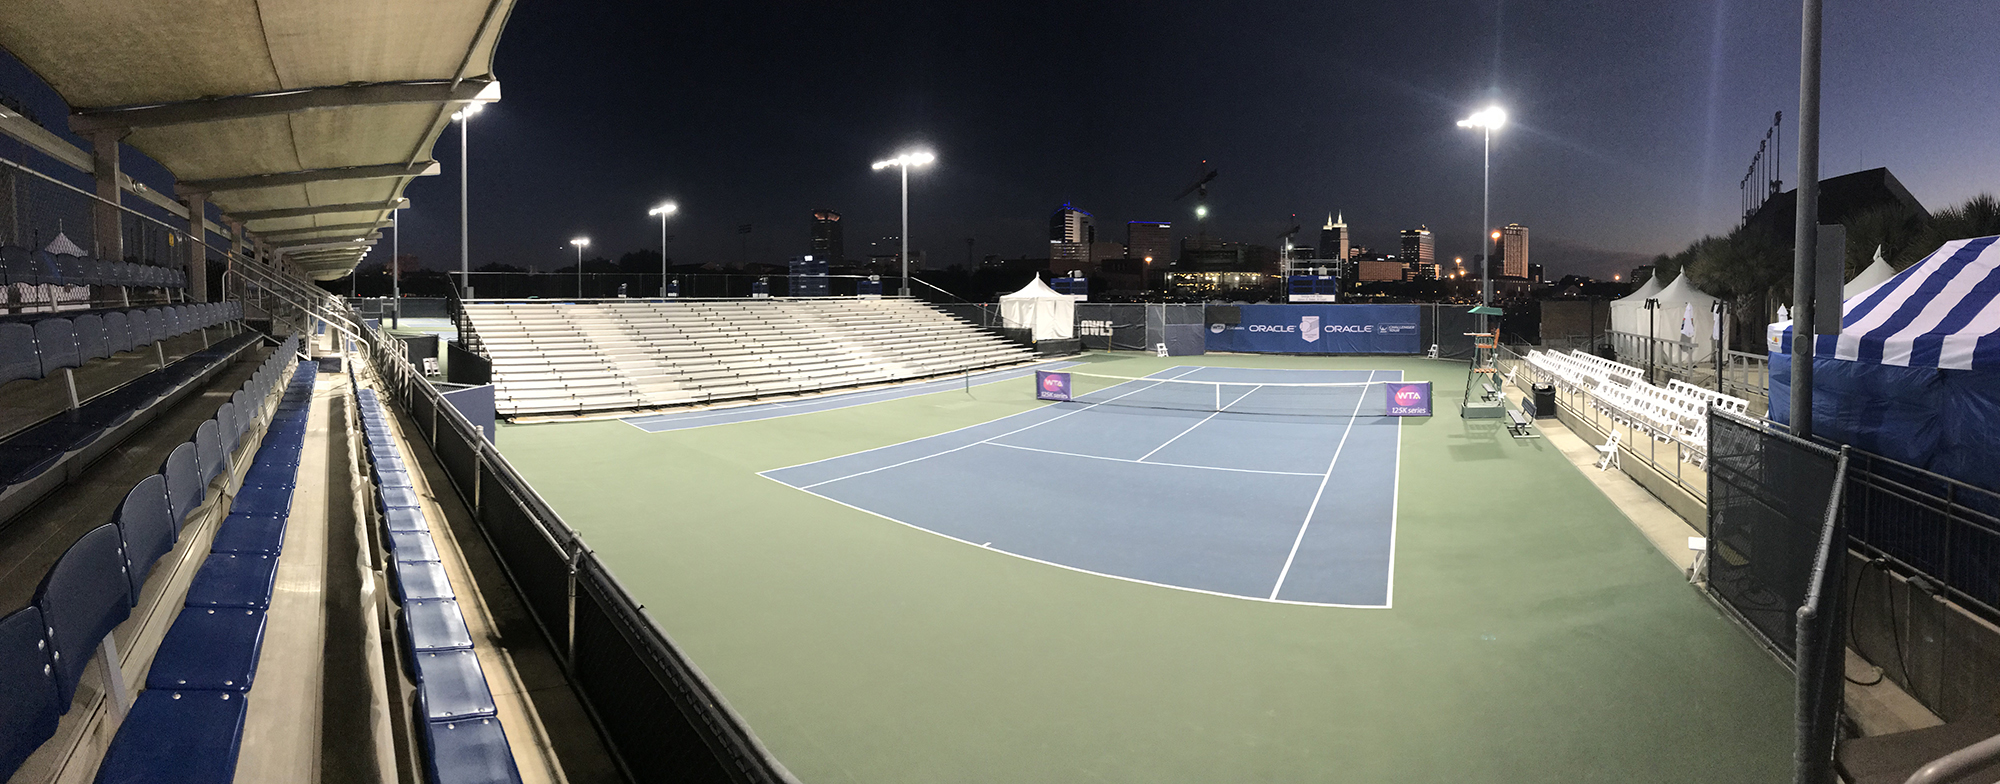 George R Brown Tennis Center Facilities Rice University Athletics Tennis tv features live streaming and video on demand of atp tennis matches in full on pc, mac, mobile tennis tv. george r brown tennis center